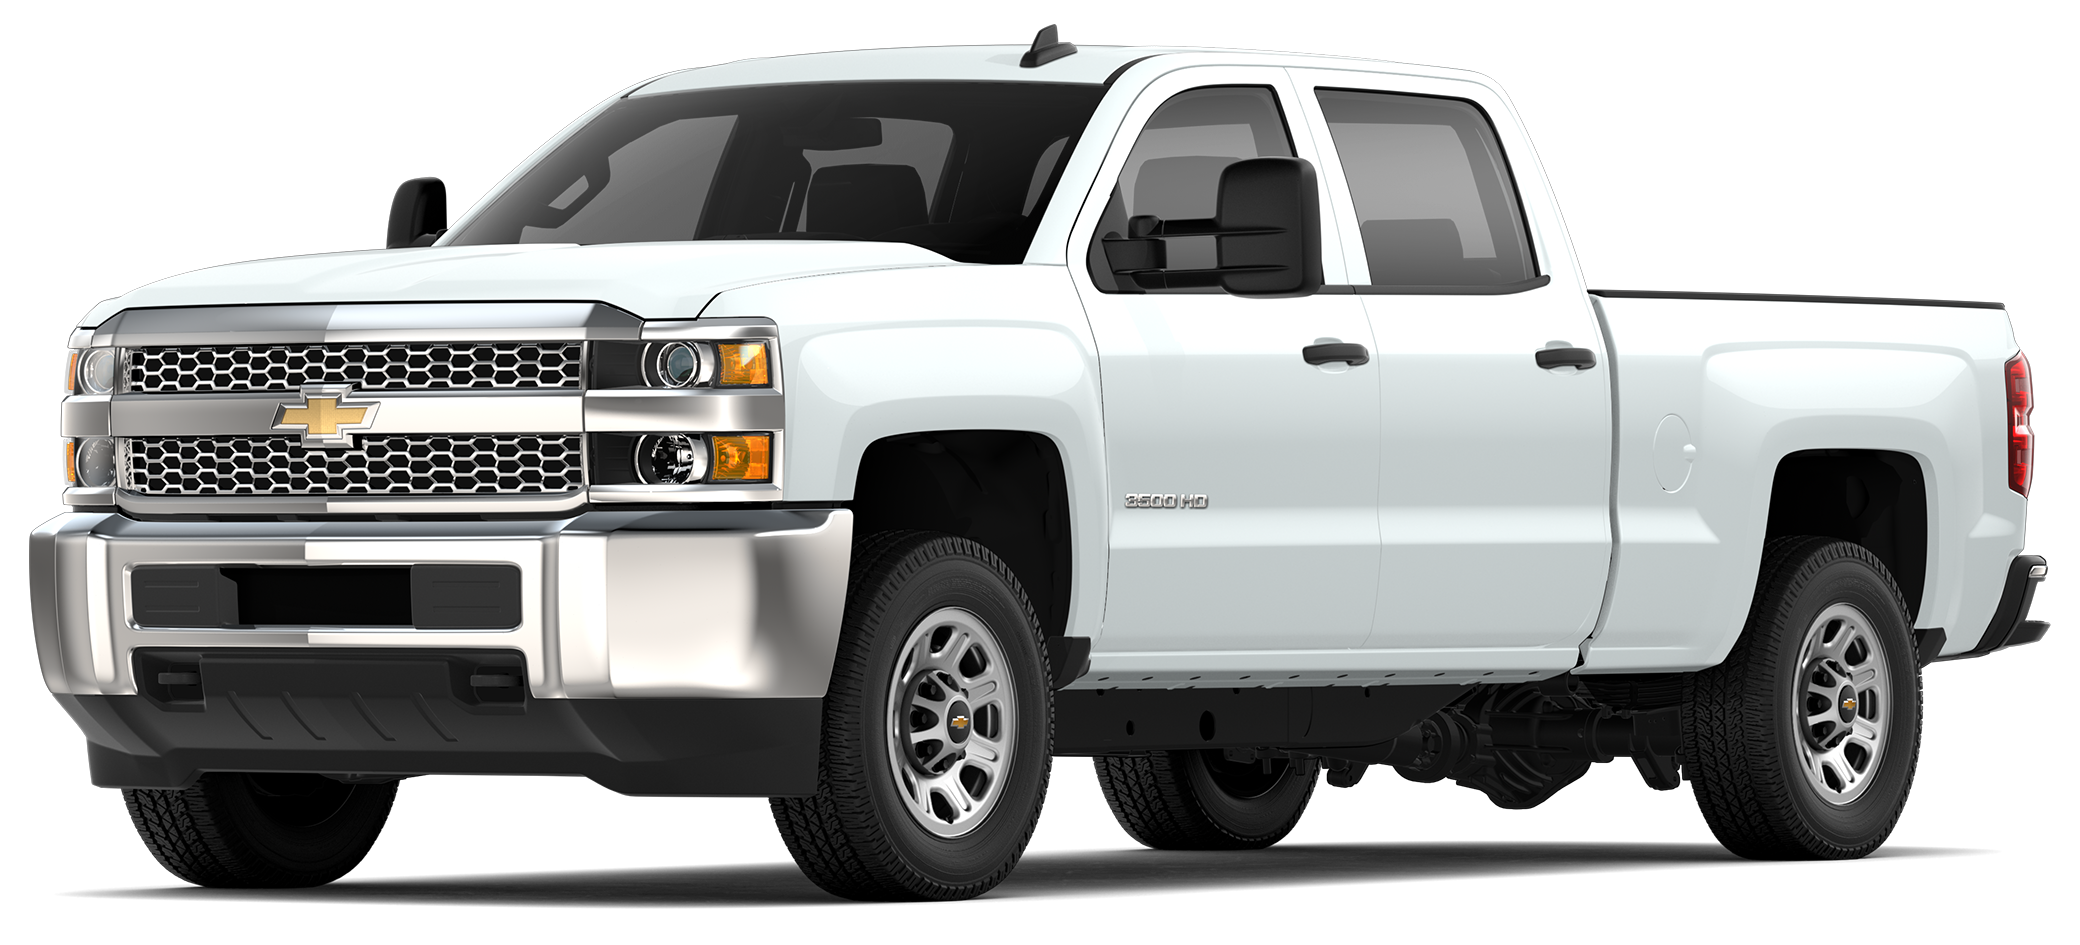 2019 chevrolet silverado 3500hd for sale in danvers ma herb chambers chevrolet. Black Bedroom Furniture Sets. Home Design Ideas